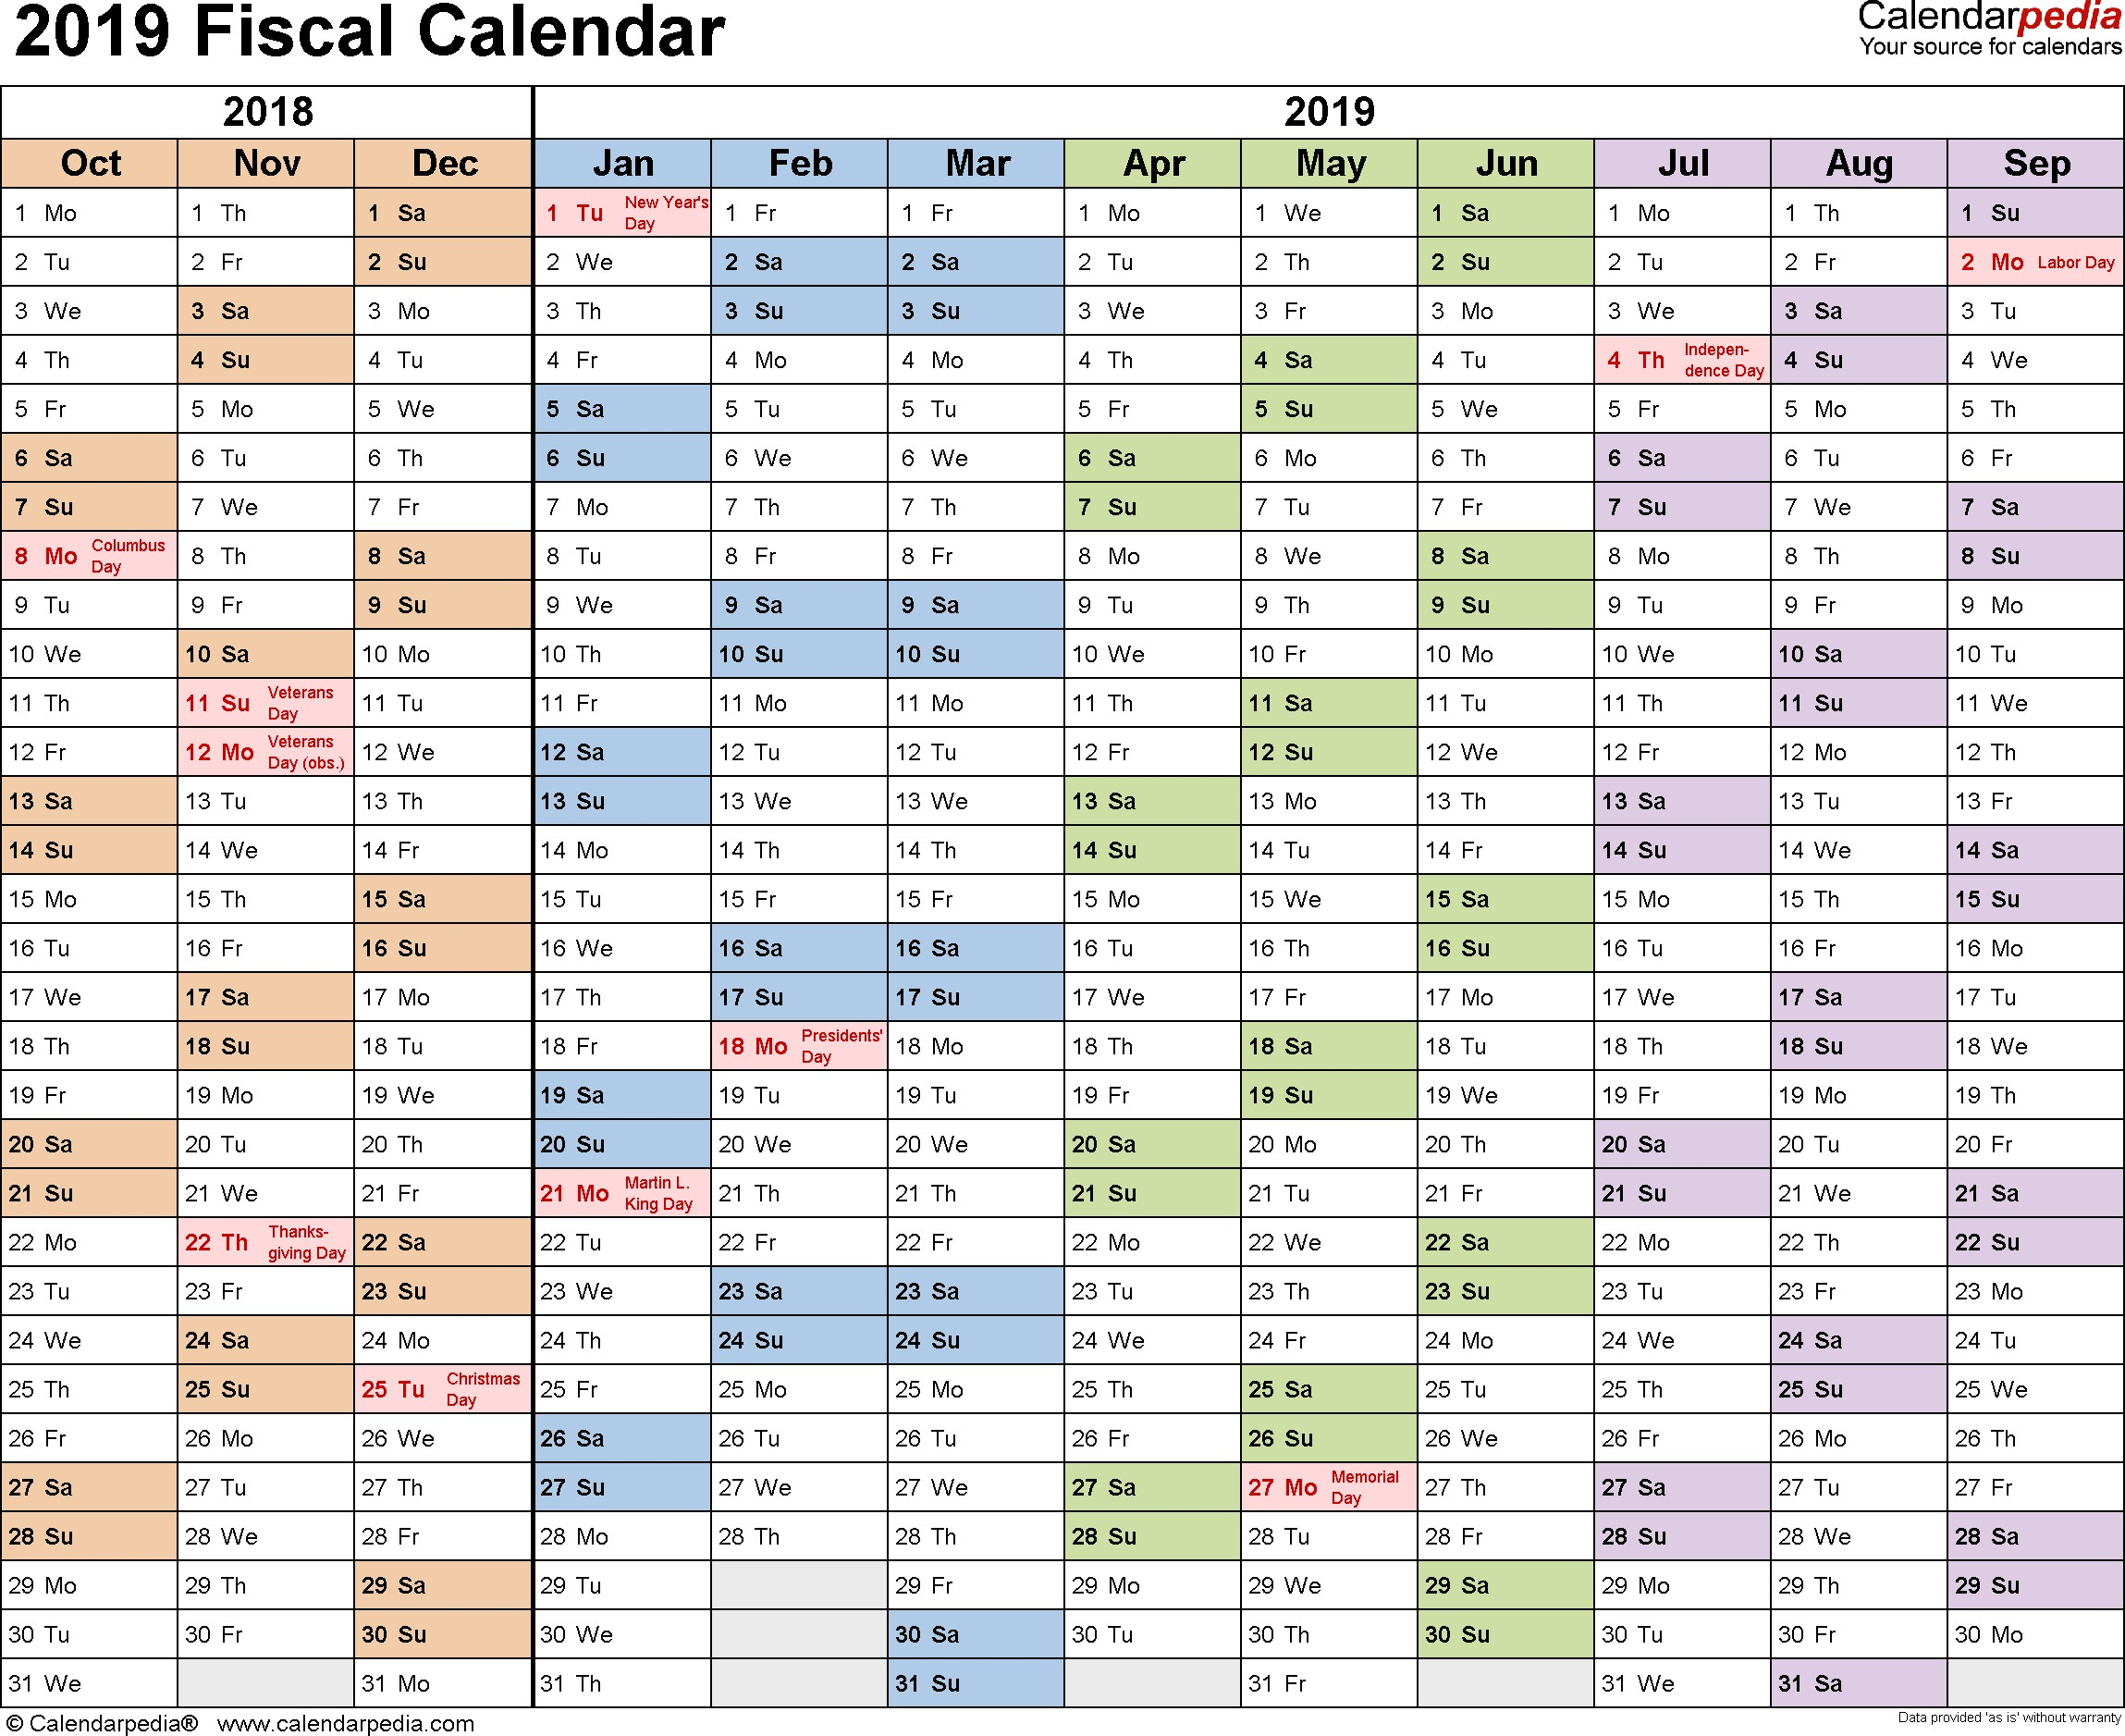 Template 1 Fiscal year calendar 2019 for Word landscape orientation months horizontally